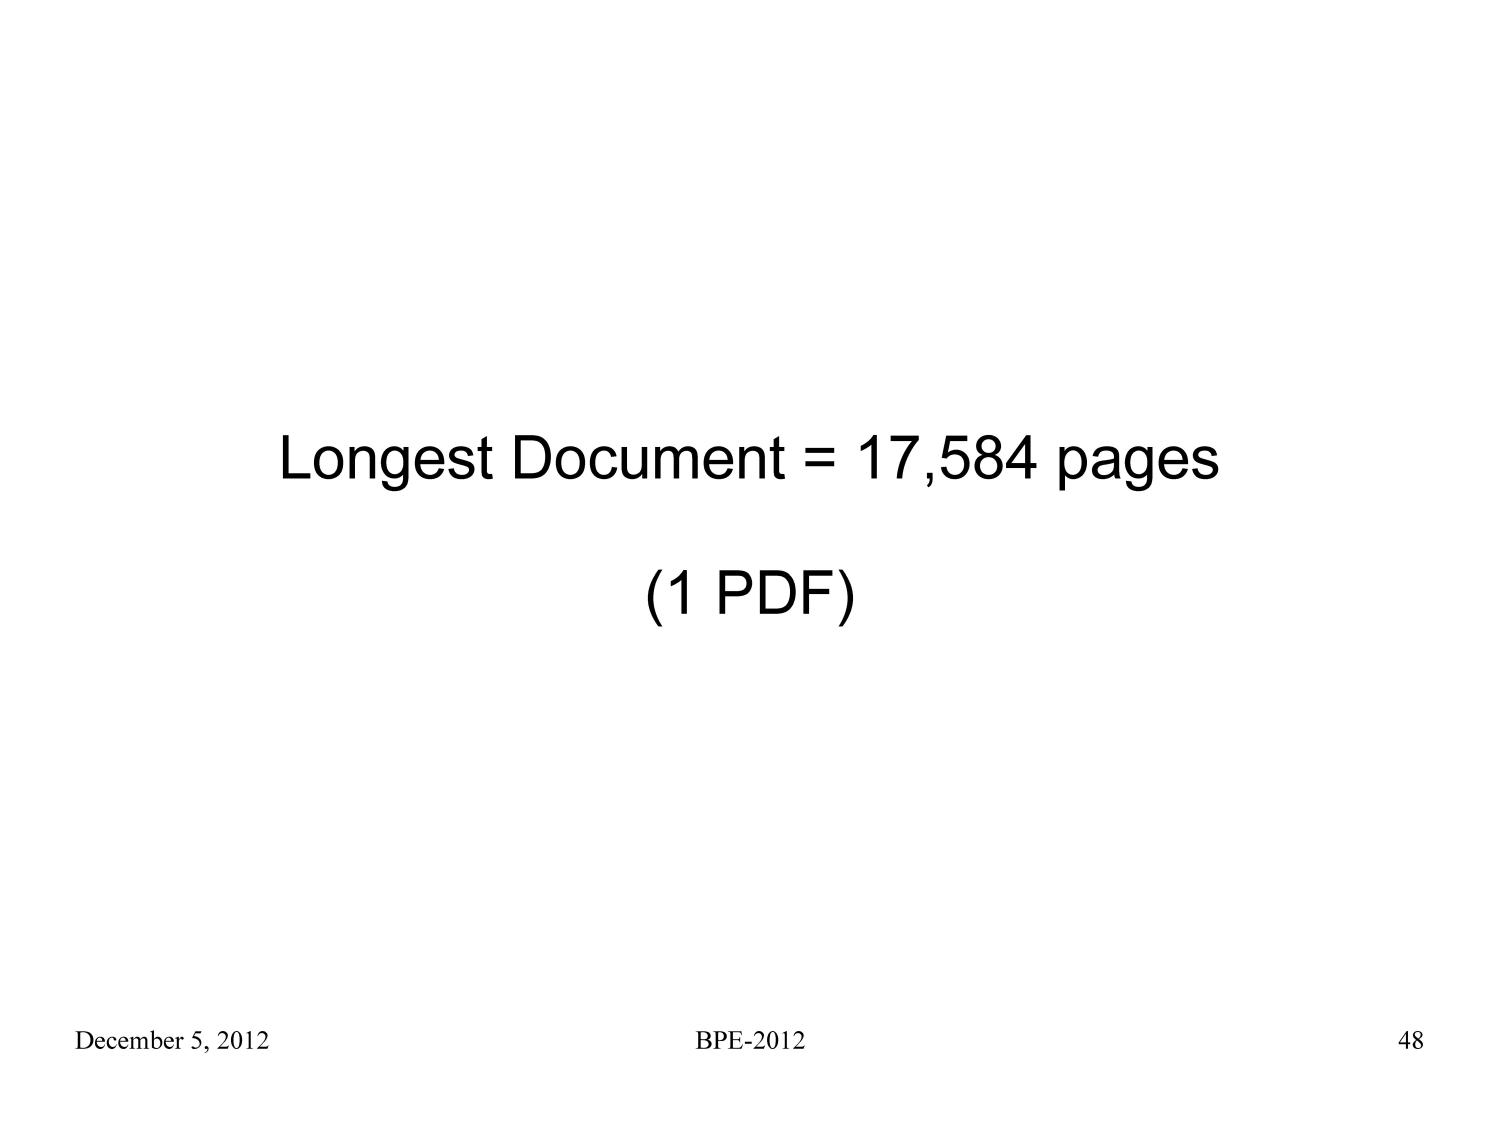 End of Term 2008 Presidential Web Archive: PDF Content Analysis                                                                                                      [Sequence #]: 48 of 104